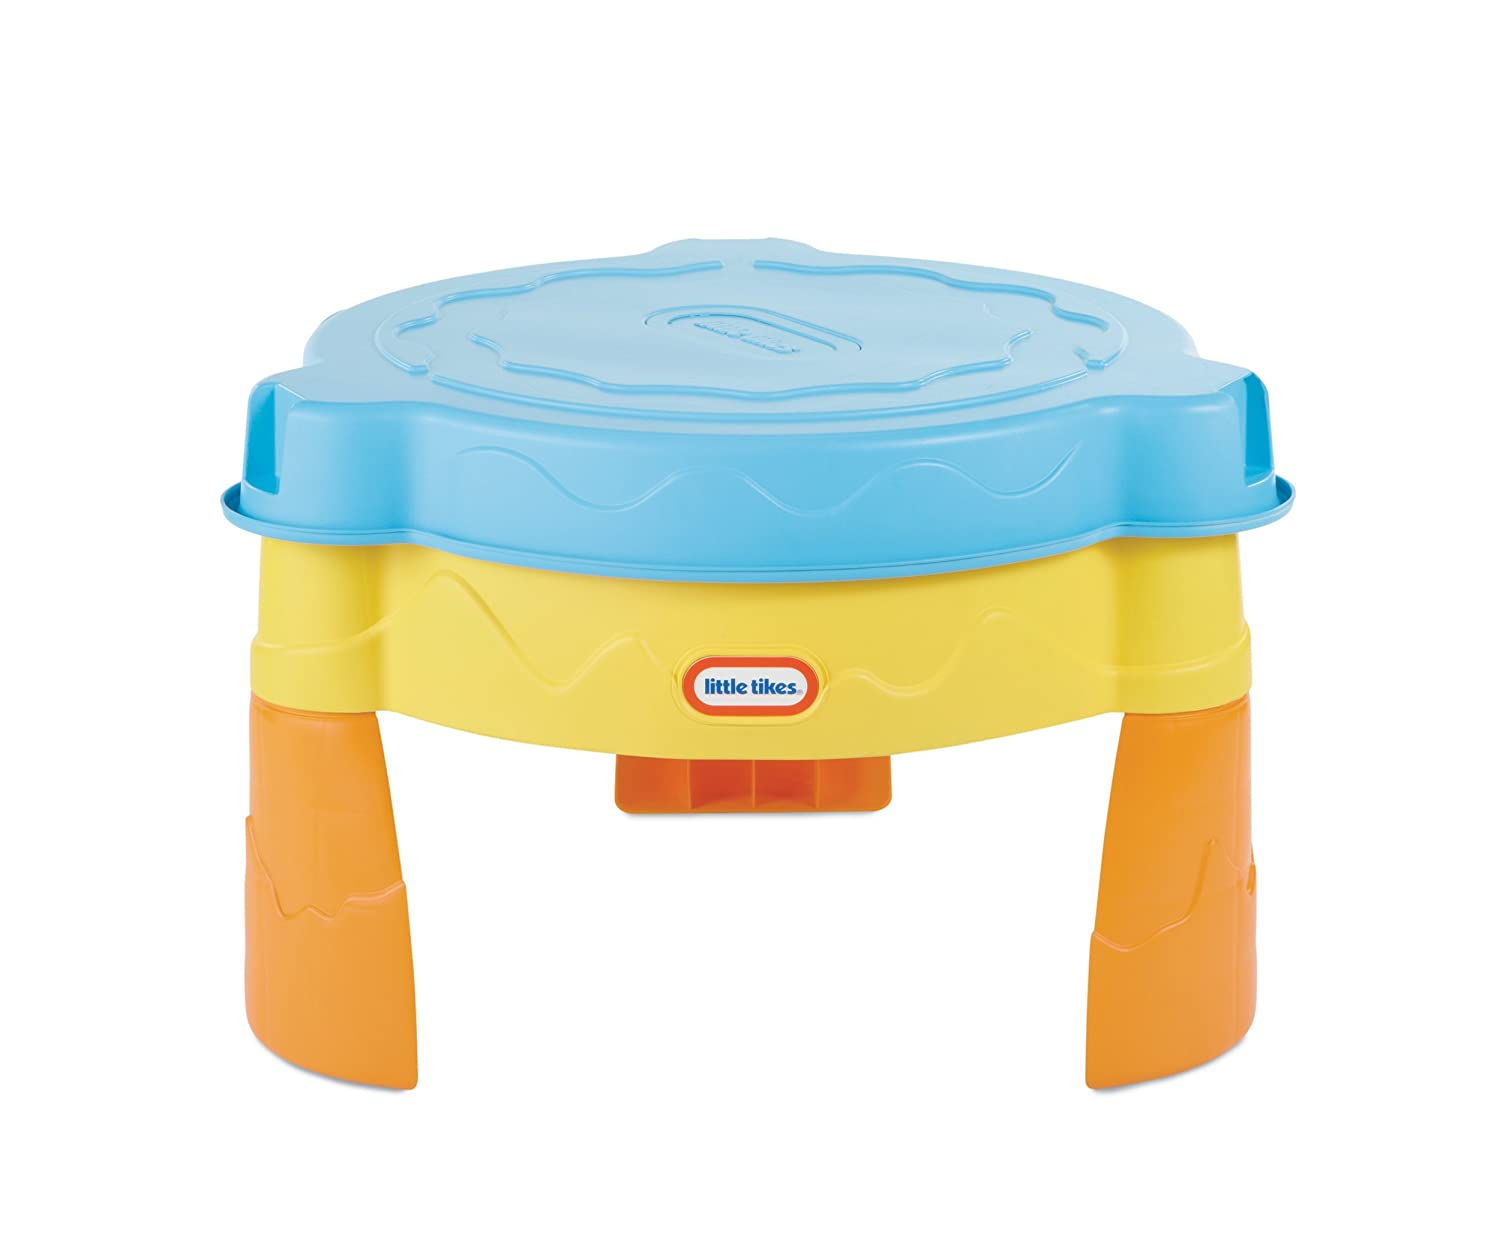 An Image of Little Tikes Treasure Hunt Sand and Water Table